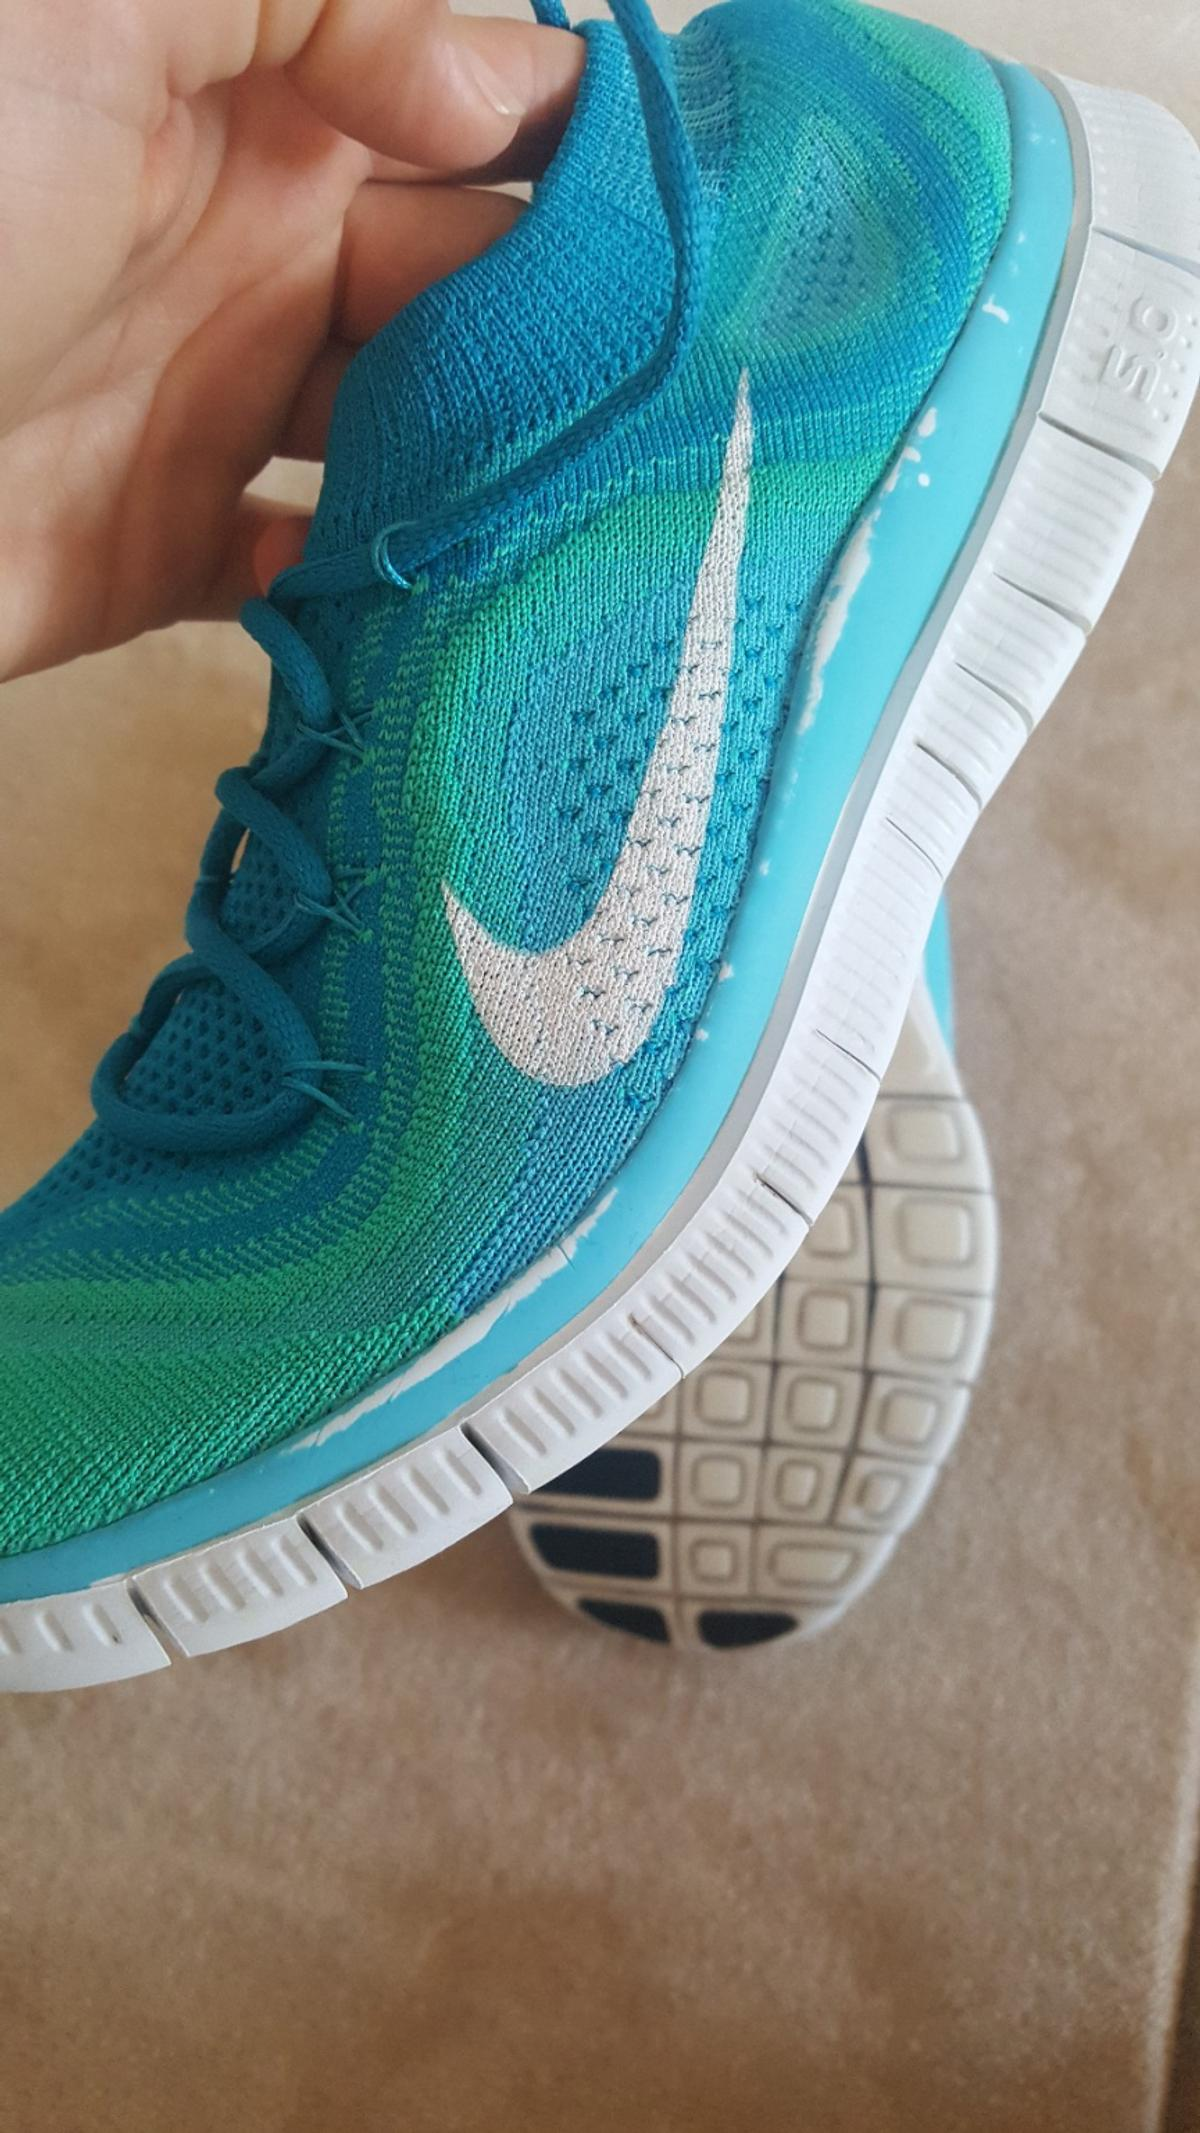 Nike Free 5.0 in 86438 Kissing for €35.00 for sale | Shpock